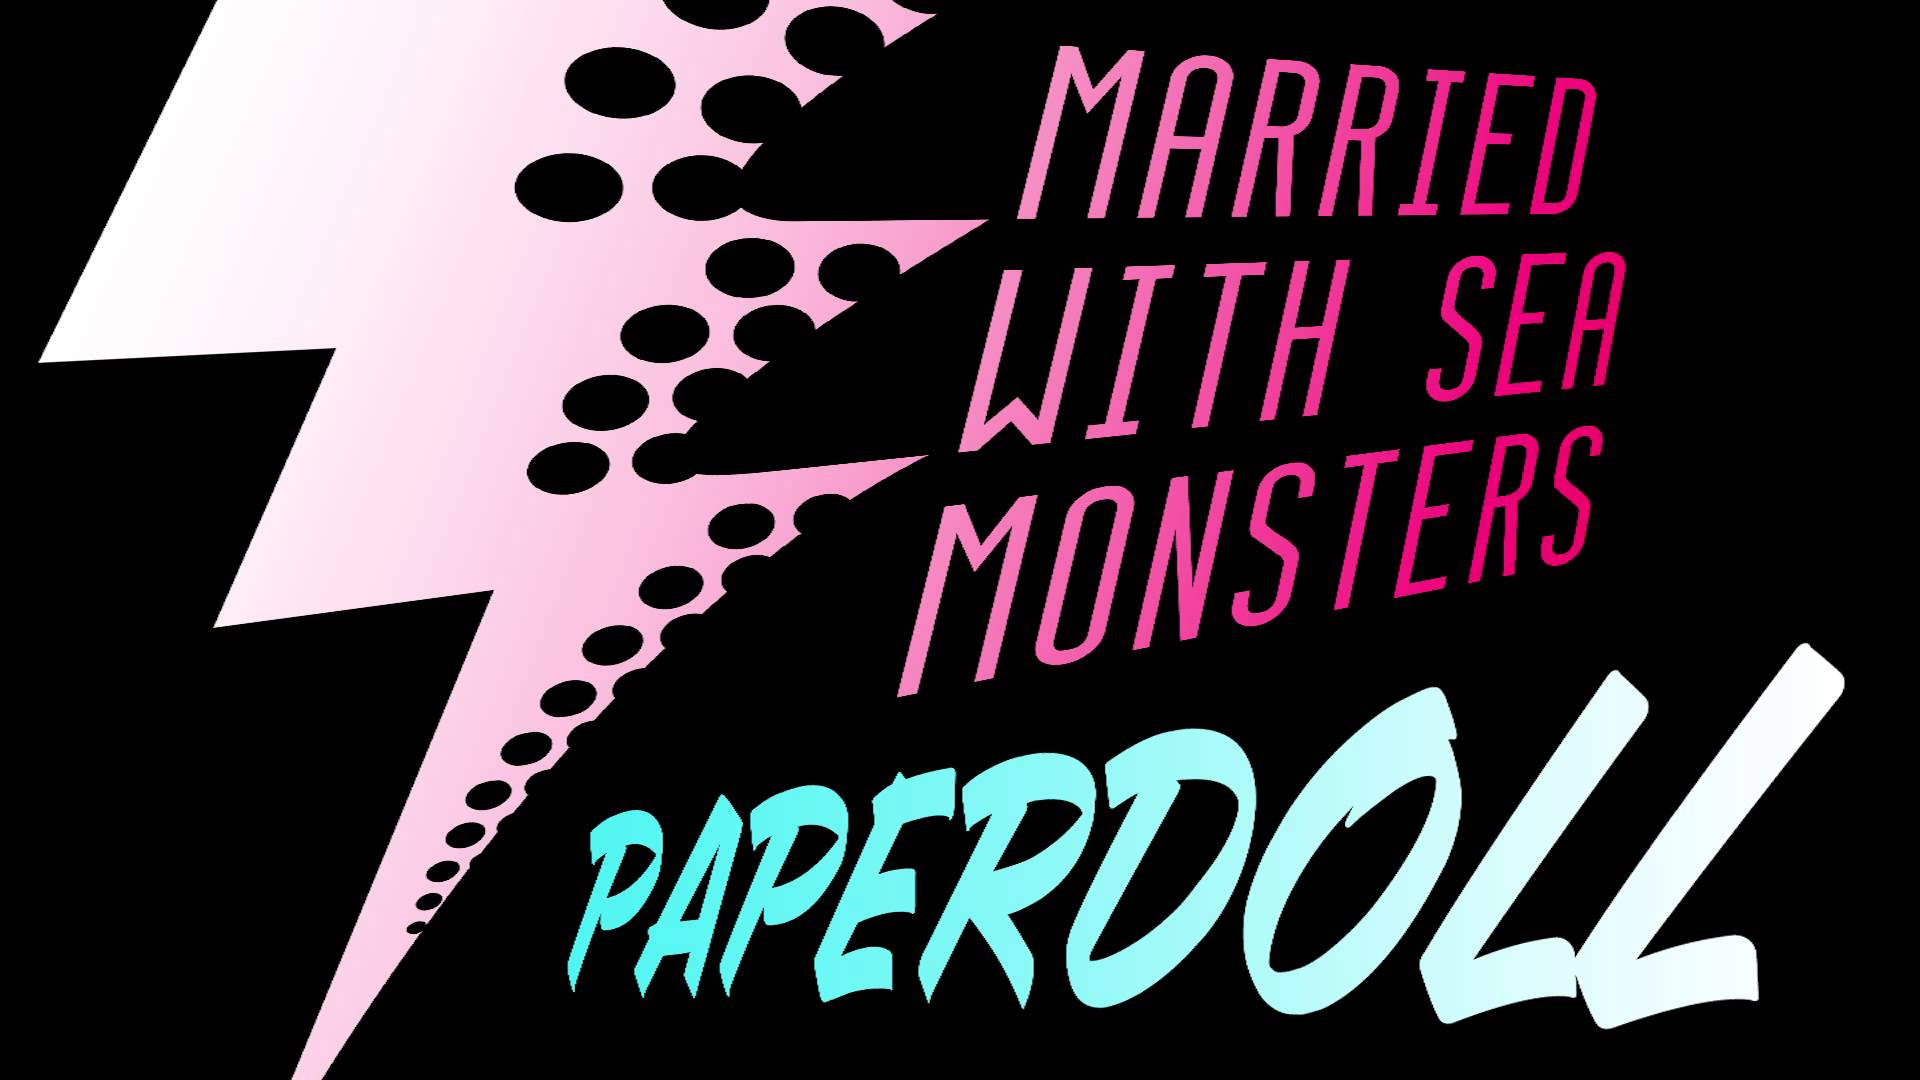 MarriedWithSeaMonsters-PaperDoll